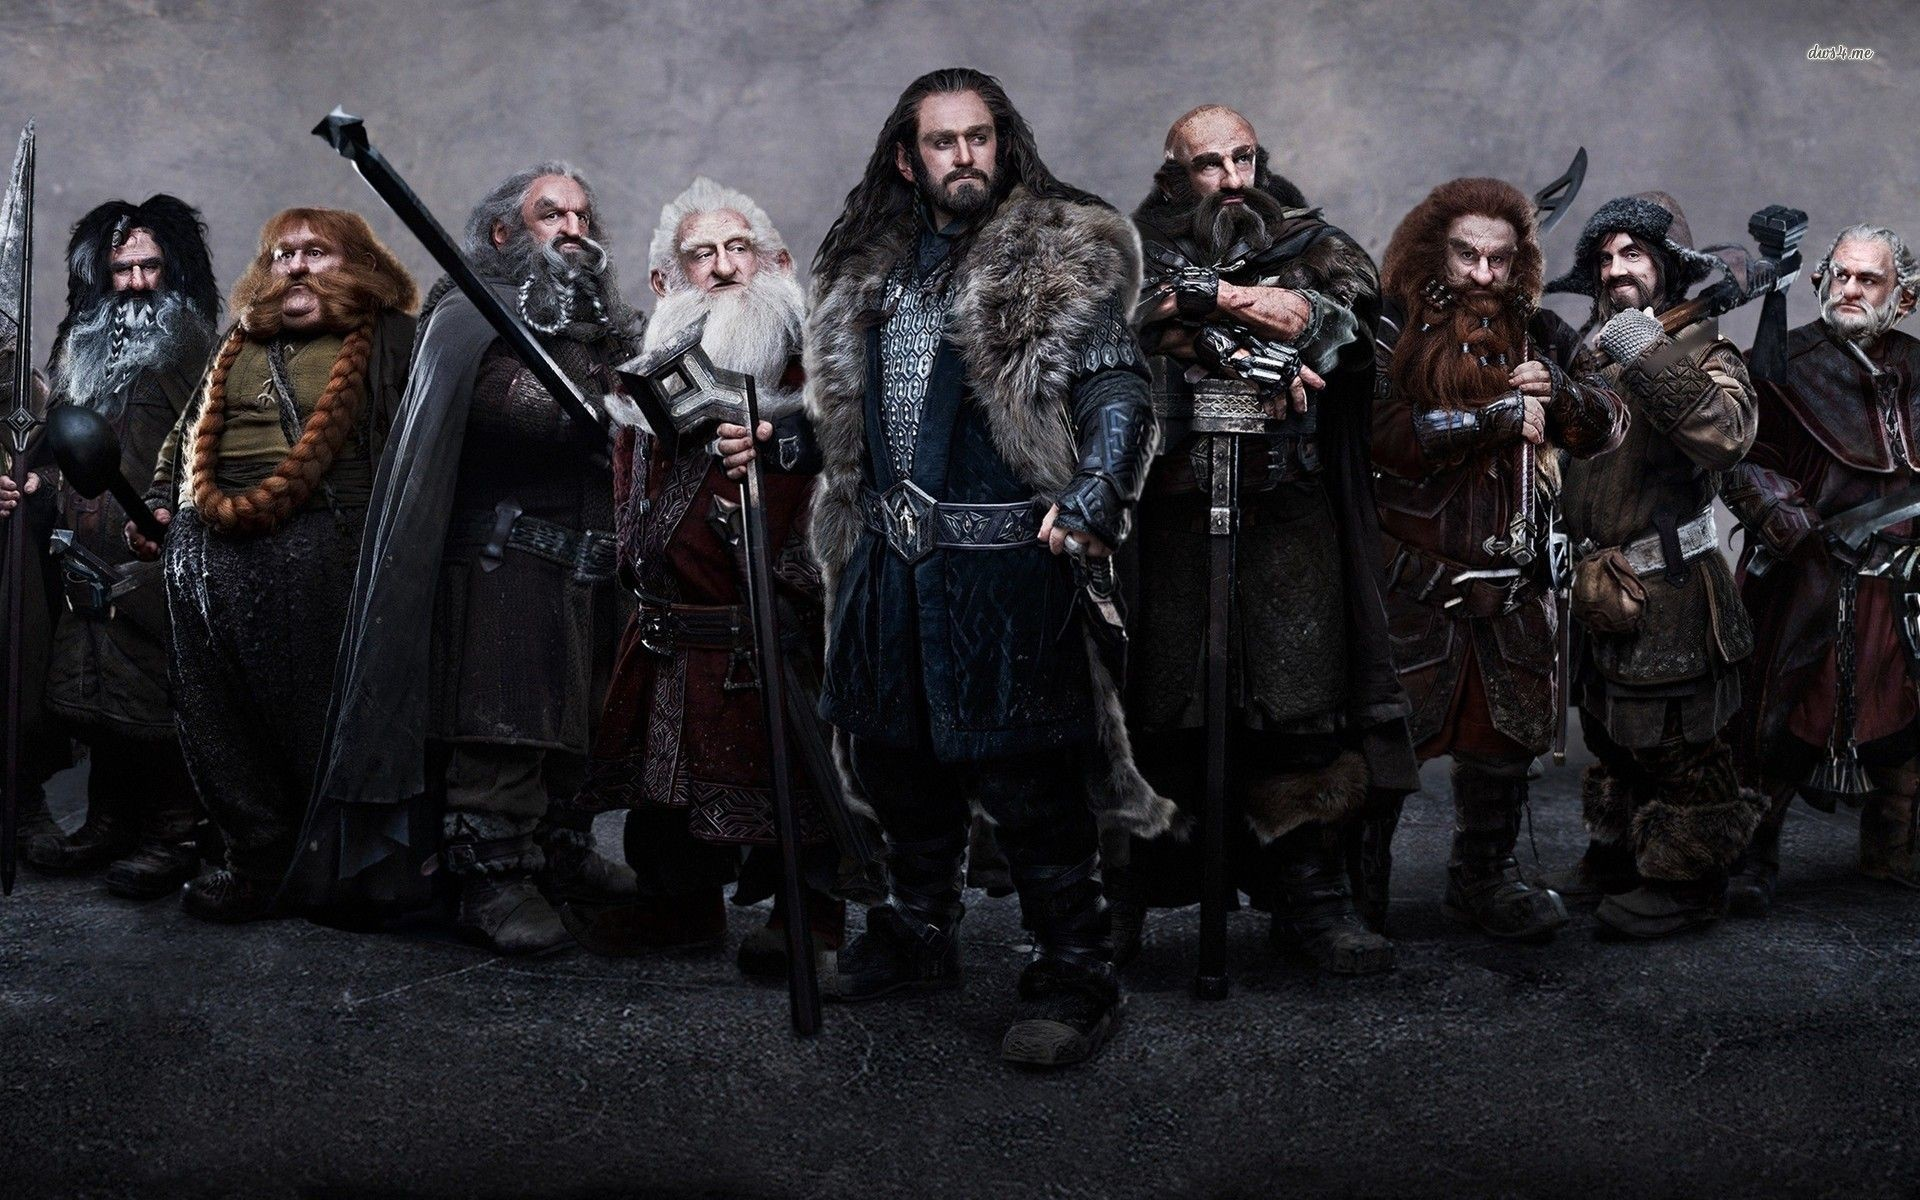 The Hobbit dwarves – The Lord of the Rings wallpaper – Movie .